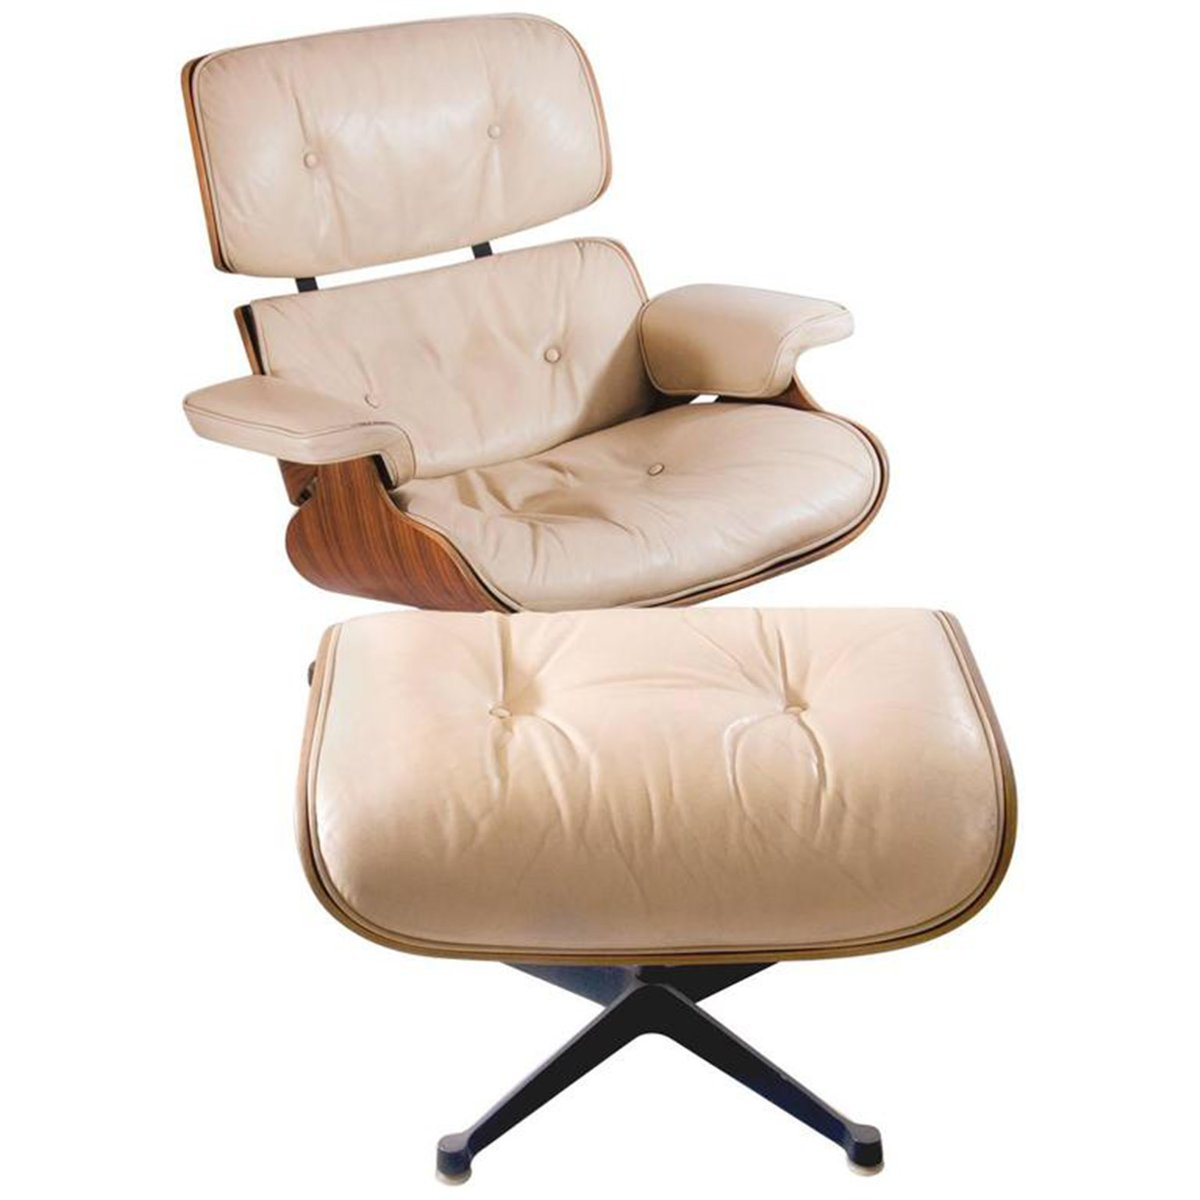 Lounge Sessel Eames Lounge Sessel Mit Hocker Von Charles And Ray Eames Für